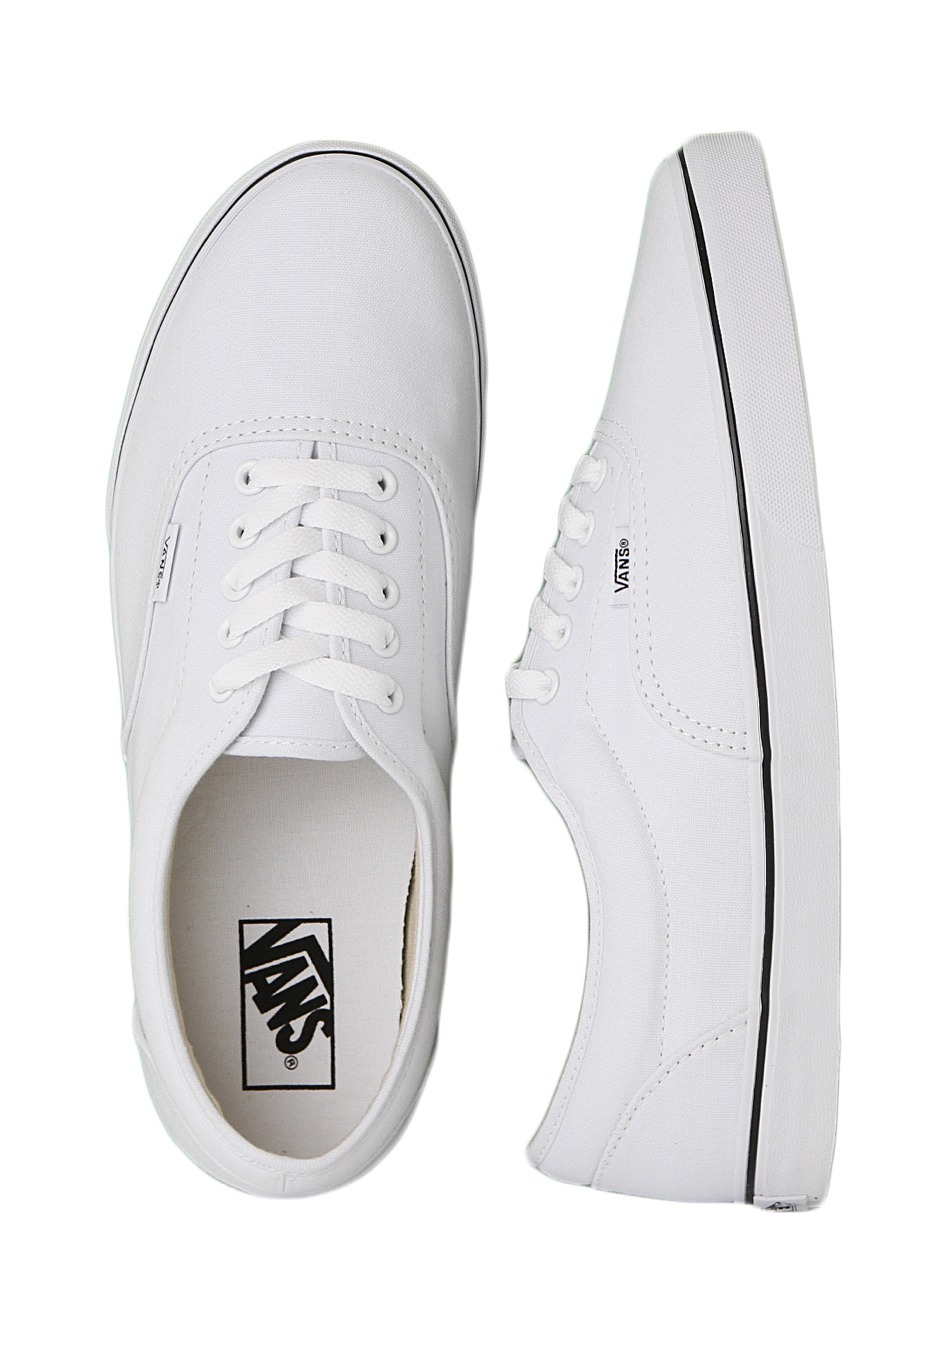 00ba4c432e Vans - LPE True White - Shoes - Impericon.com UK